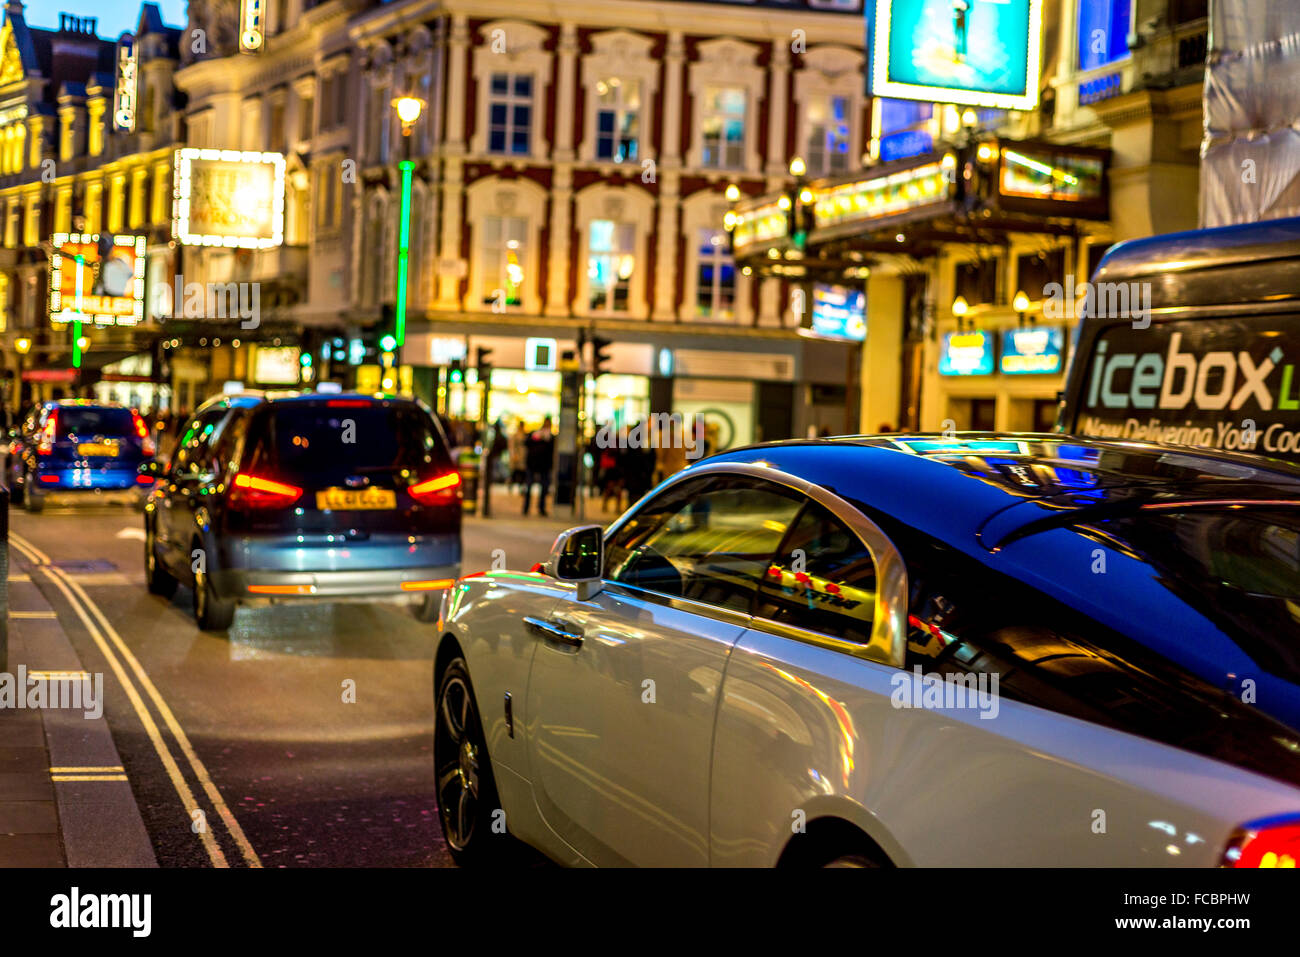 Busy London street with fantastic car in view - Stock Image